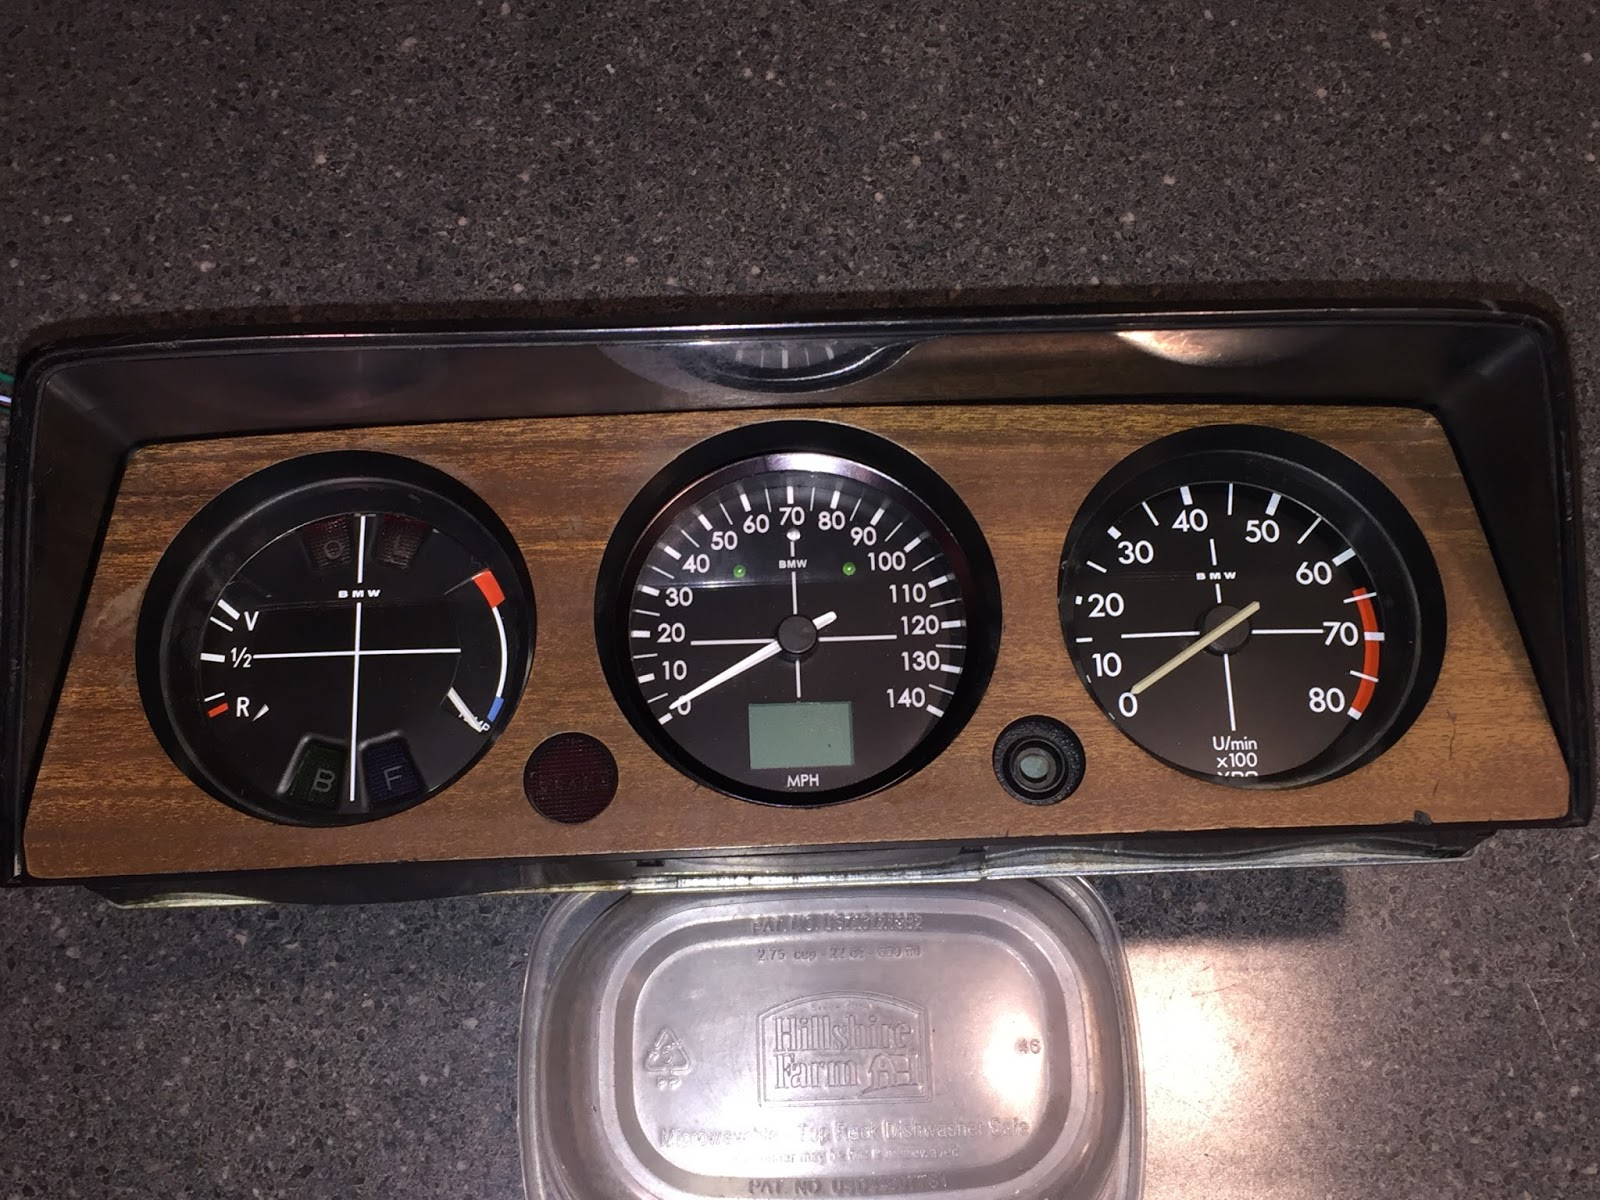 hight resolution of i m very happy with the look once installed the custom gauge face is nearly a perfect match if only the bmw lettering was spaced a little wider apart